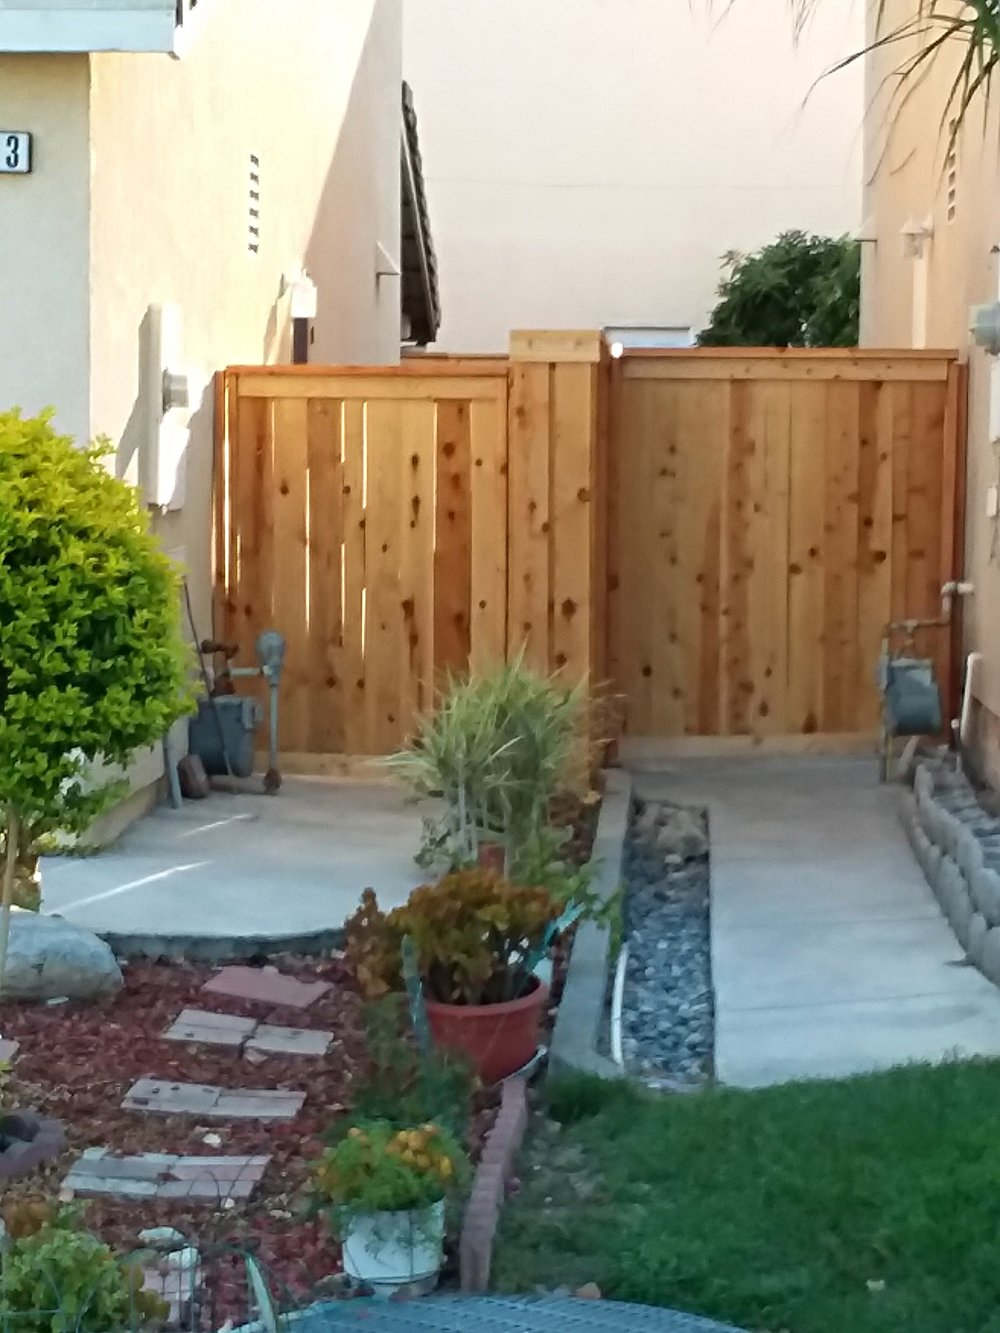 2 of the four gates in multi home project in Upland,Ca